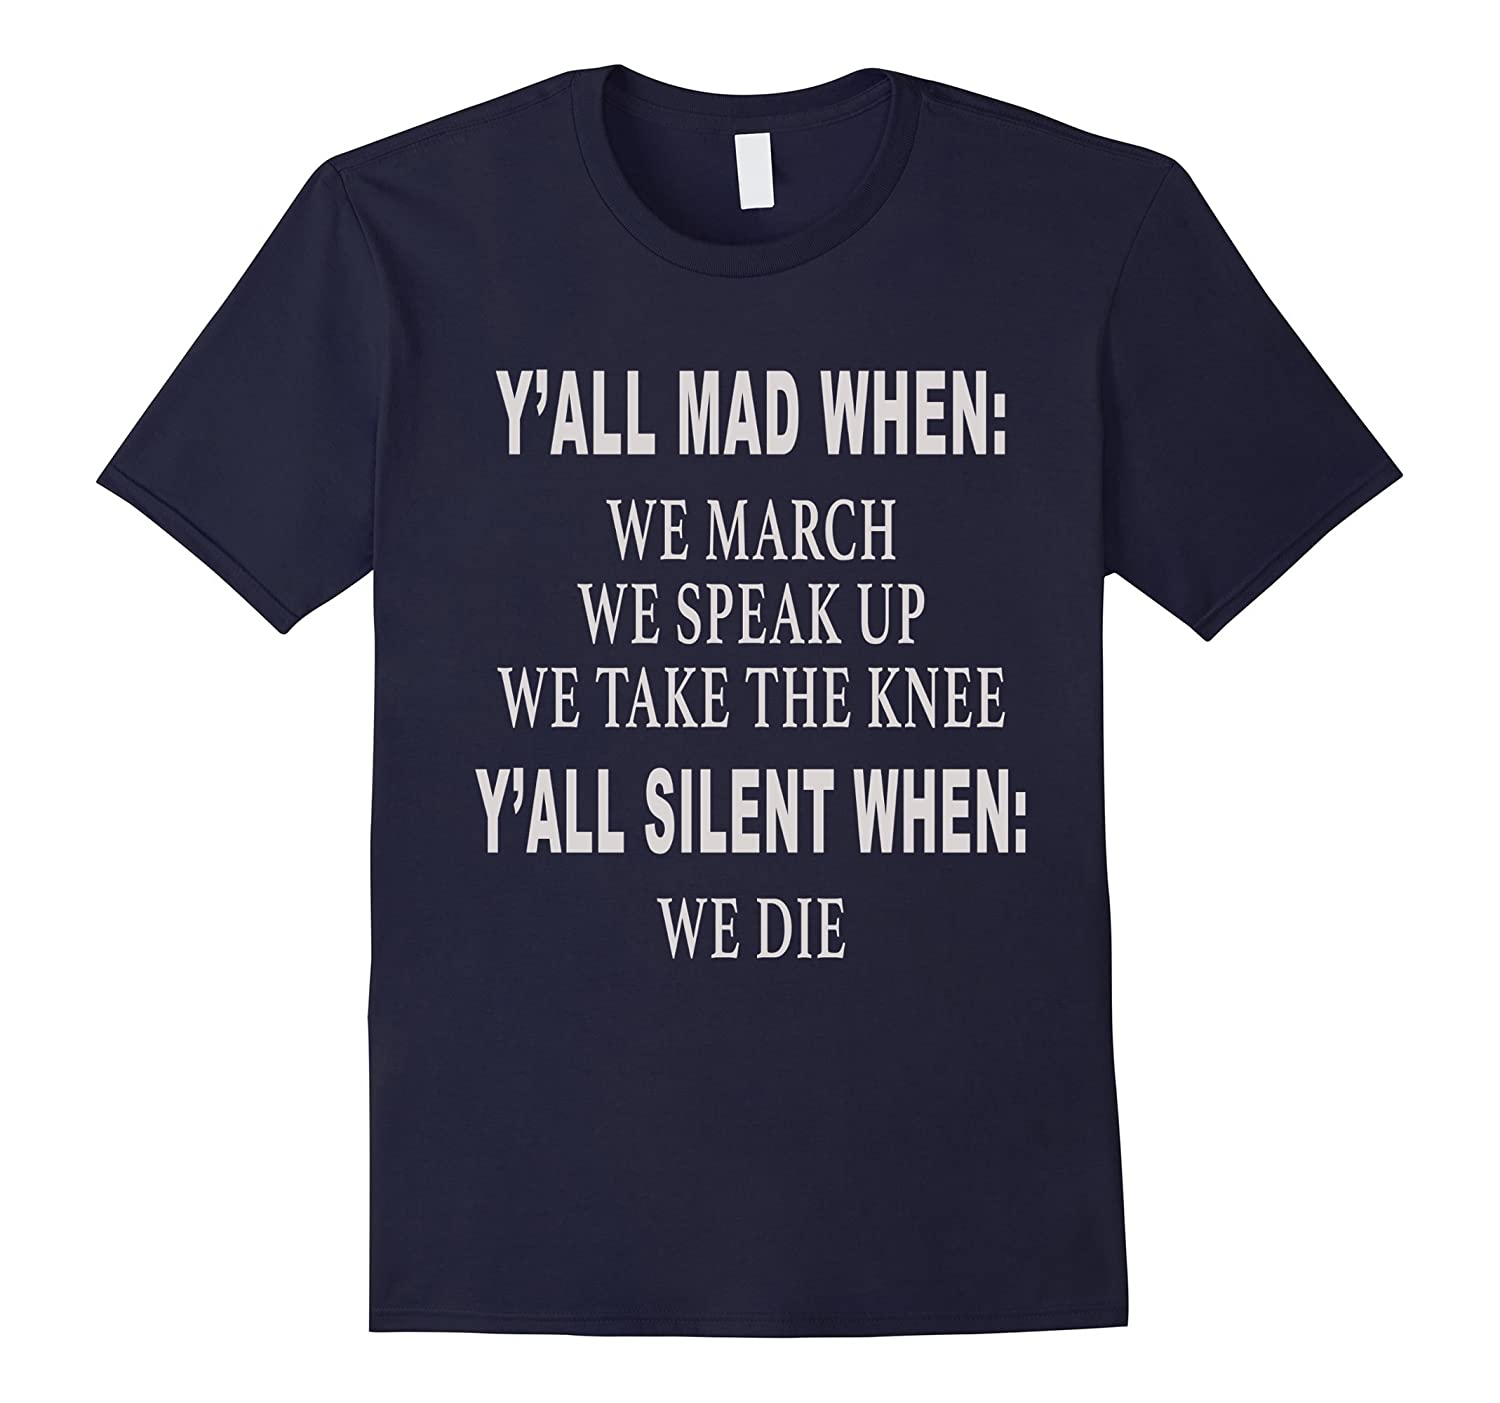 Take The Knee T Shirt Black Lives Matter BLM Tees Y'all Mad-FL